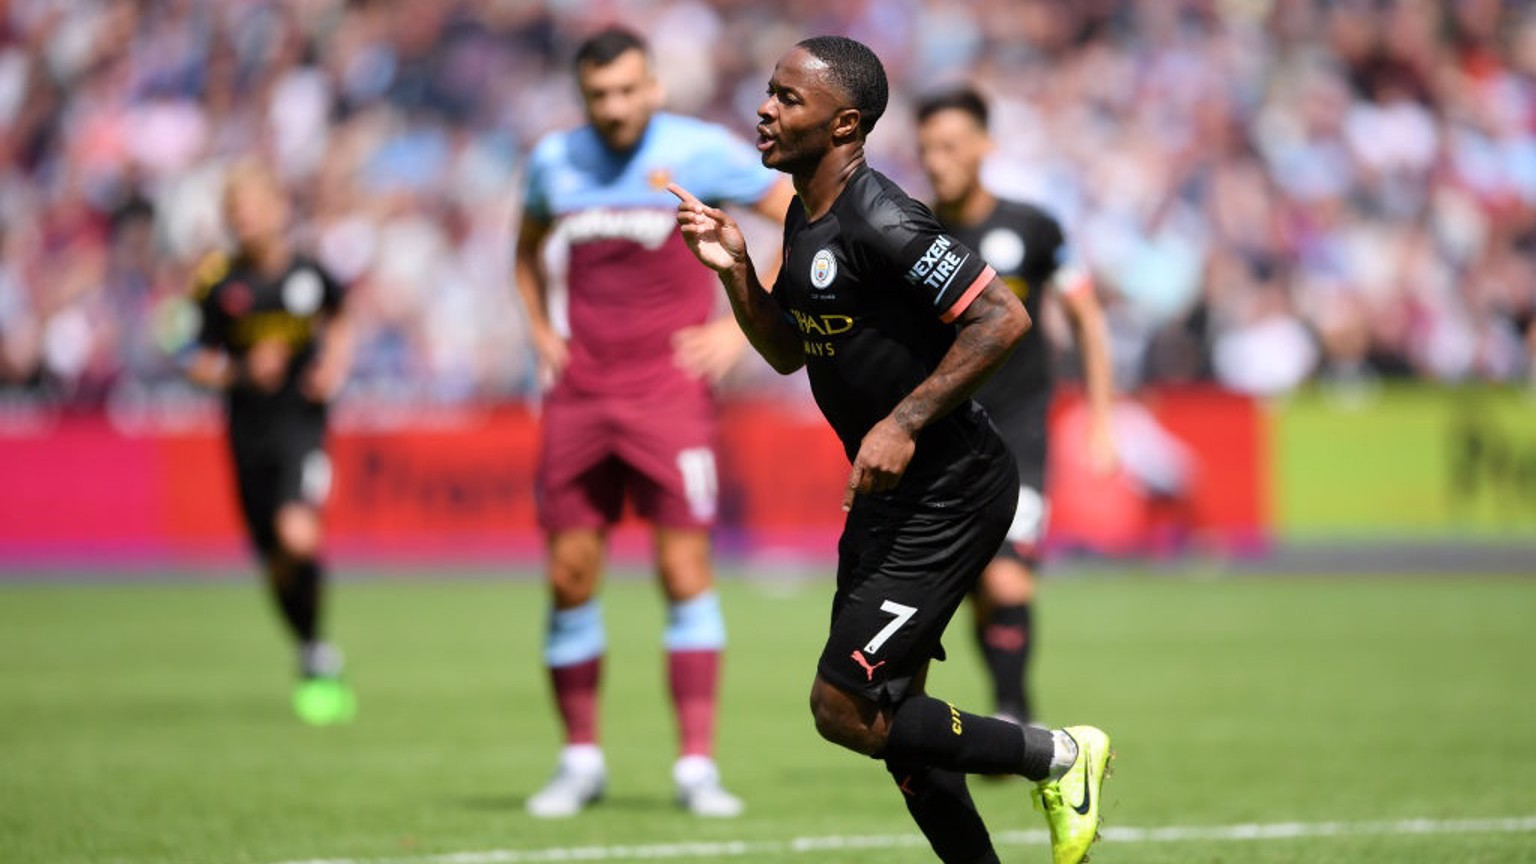 UNSTOPPABLE: Raheem Sterling wheels away after netting his second and City's third.